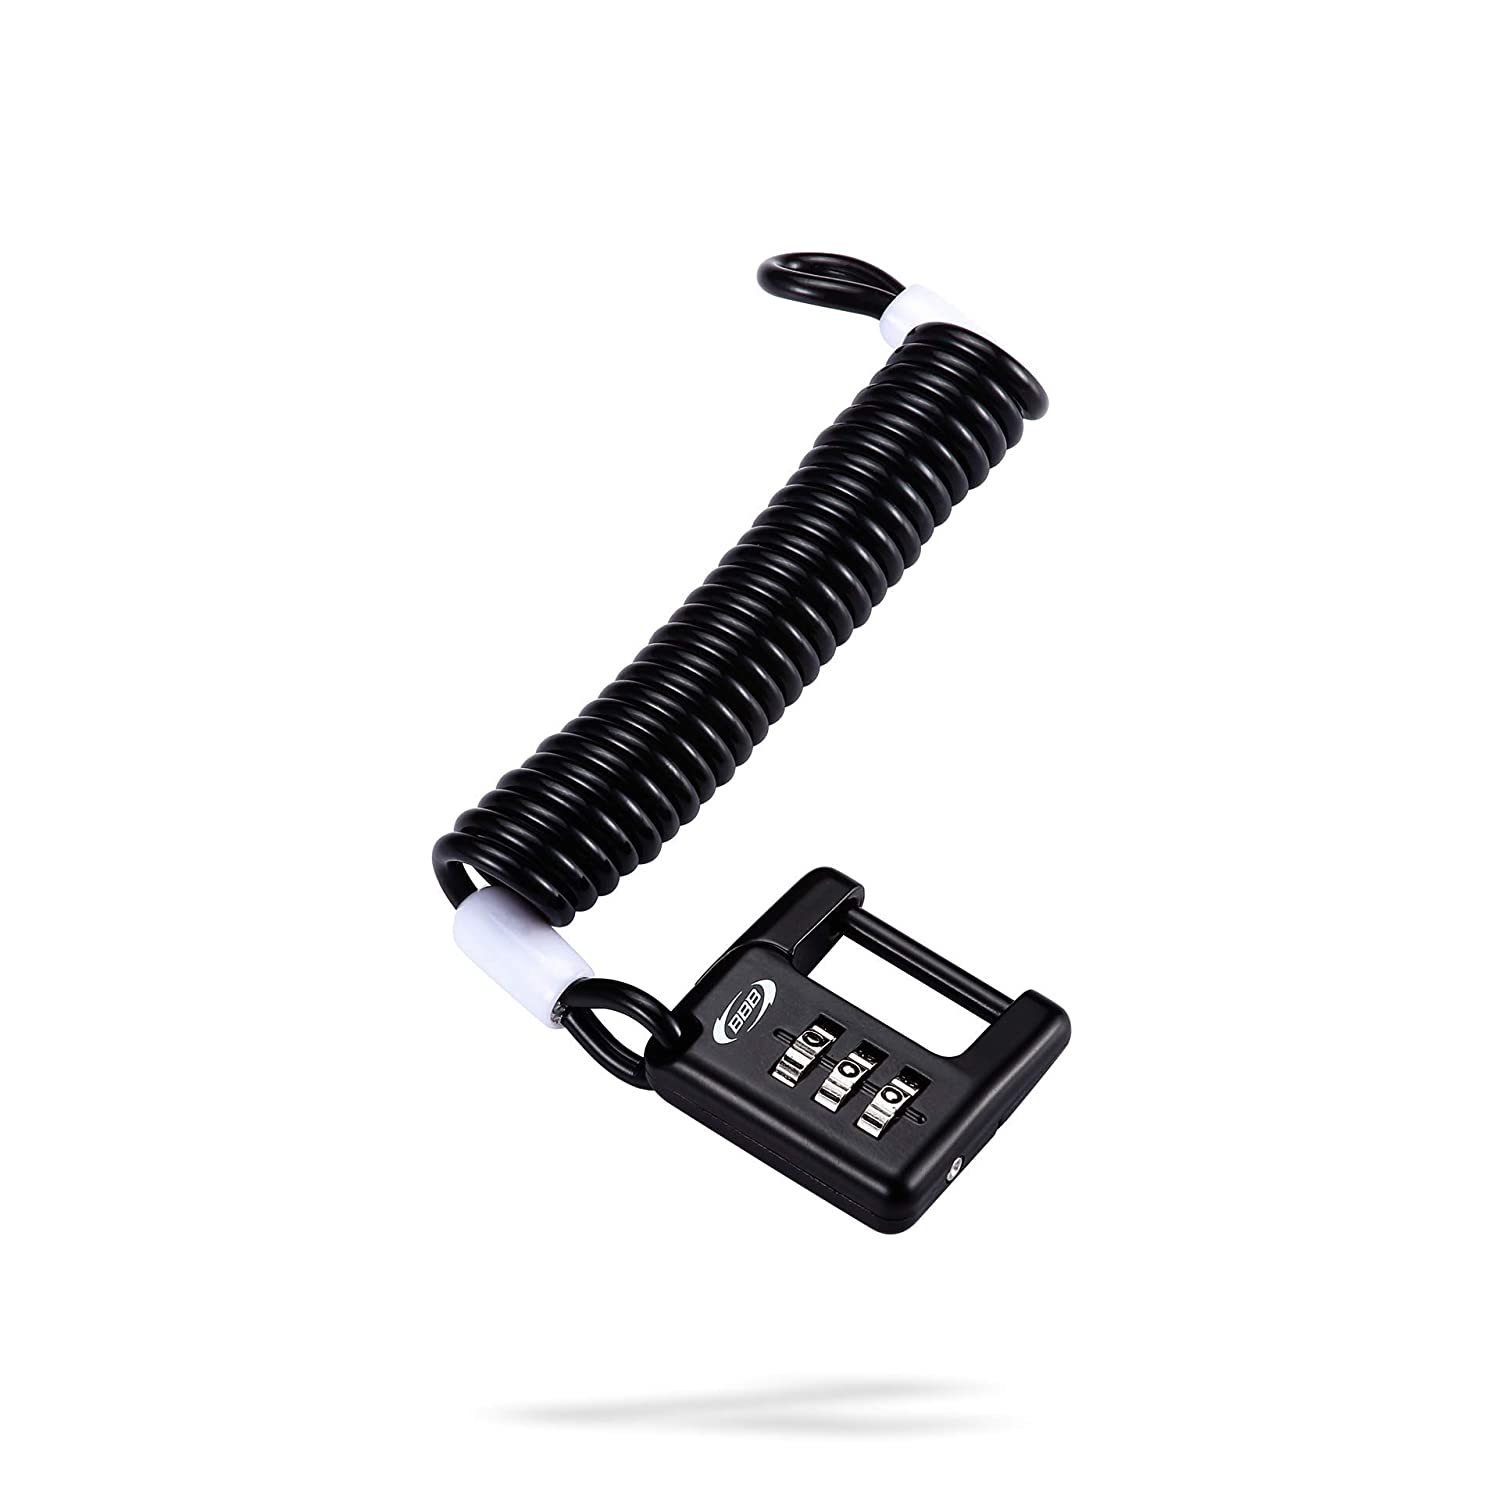 BBB - Cable Antirrobo Minisafe 1200Mm Bbl-52 2905455201